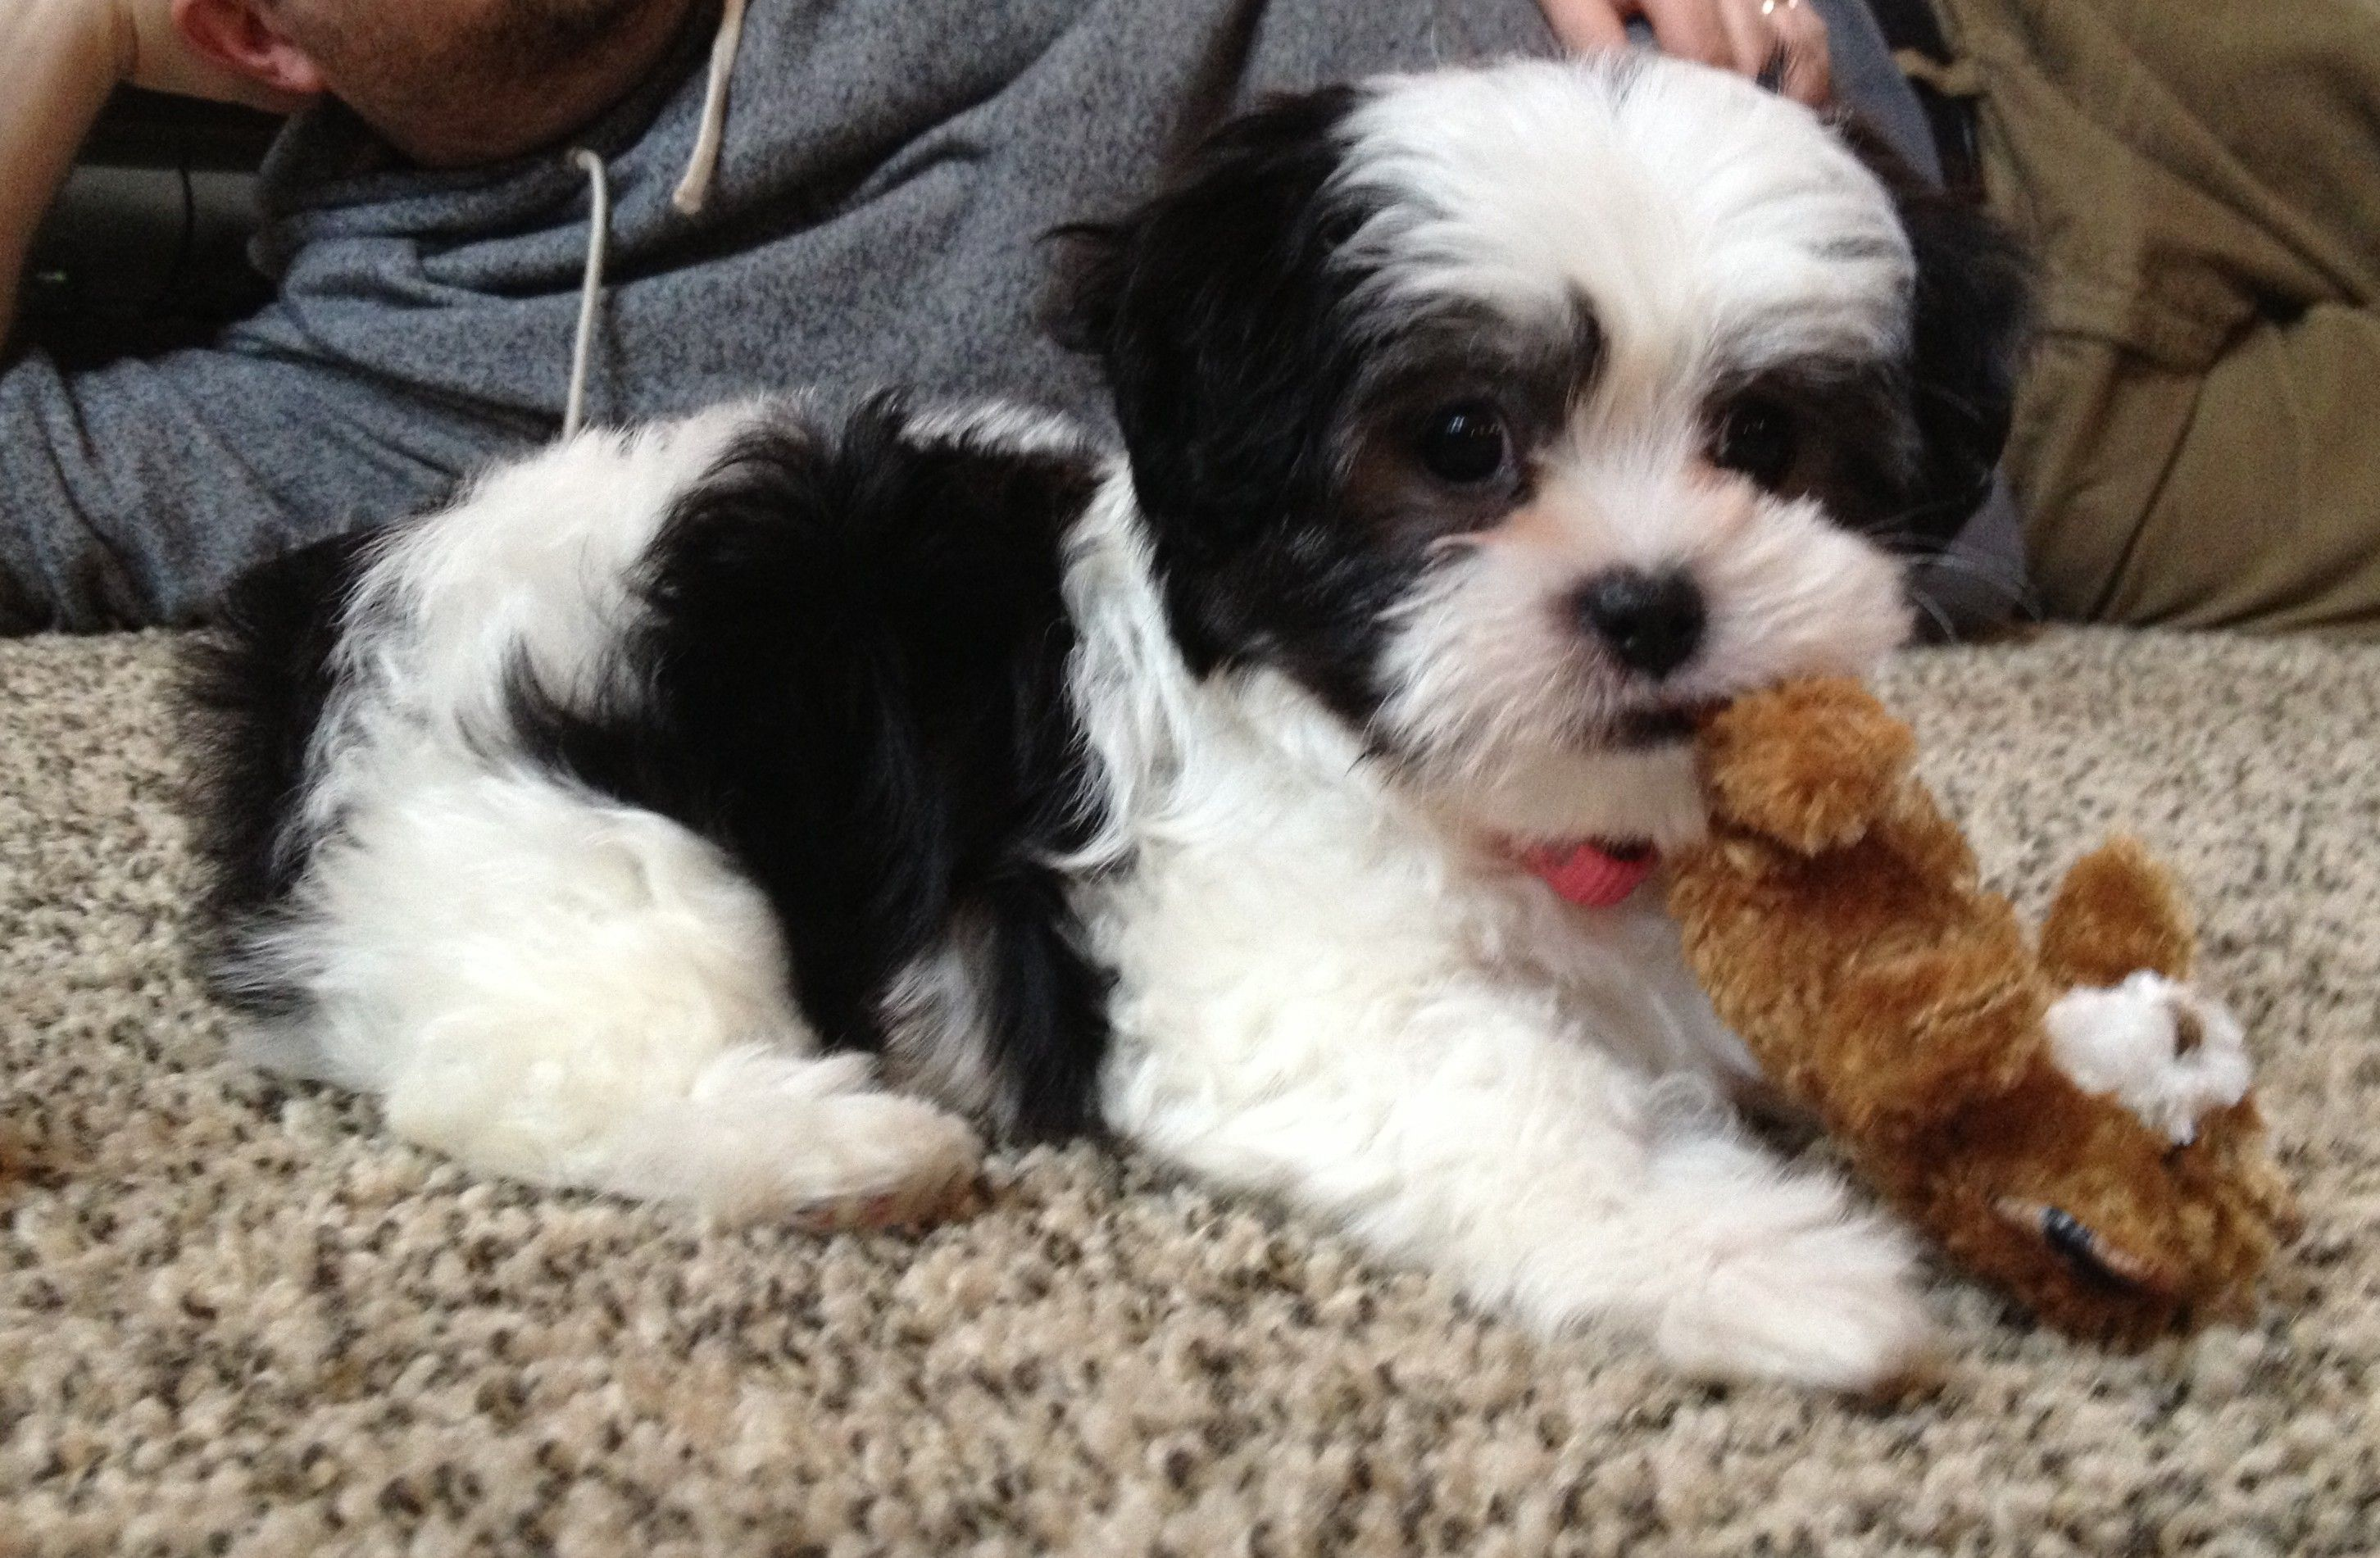 Mabel Our Malshi Puppy Robustorbust Maltese Shih Tzu Shih Tzu Puppy Shih Tzu Dog